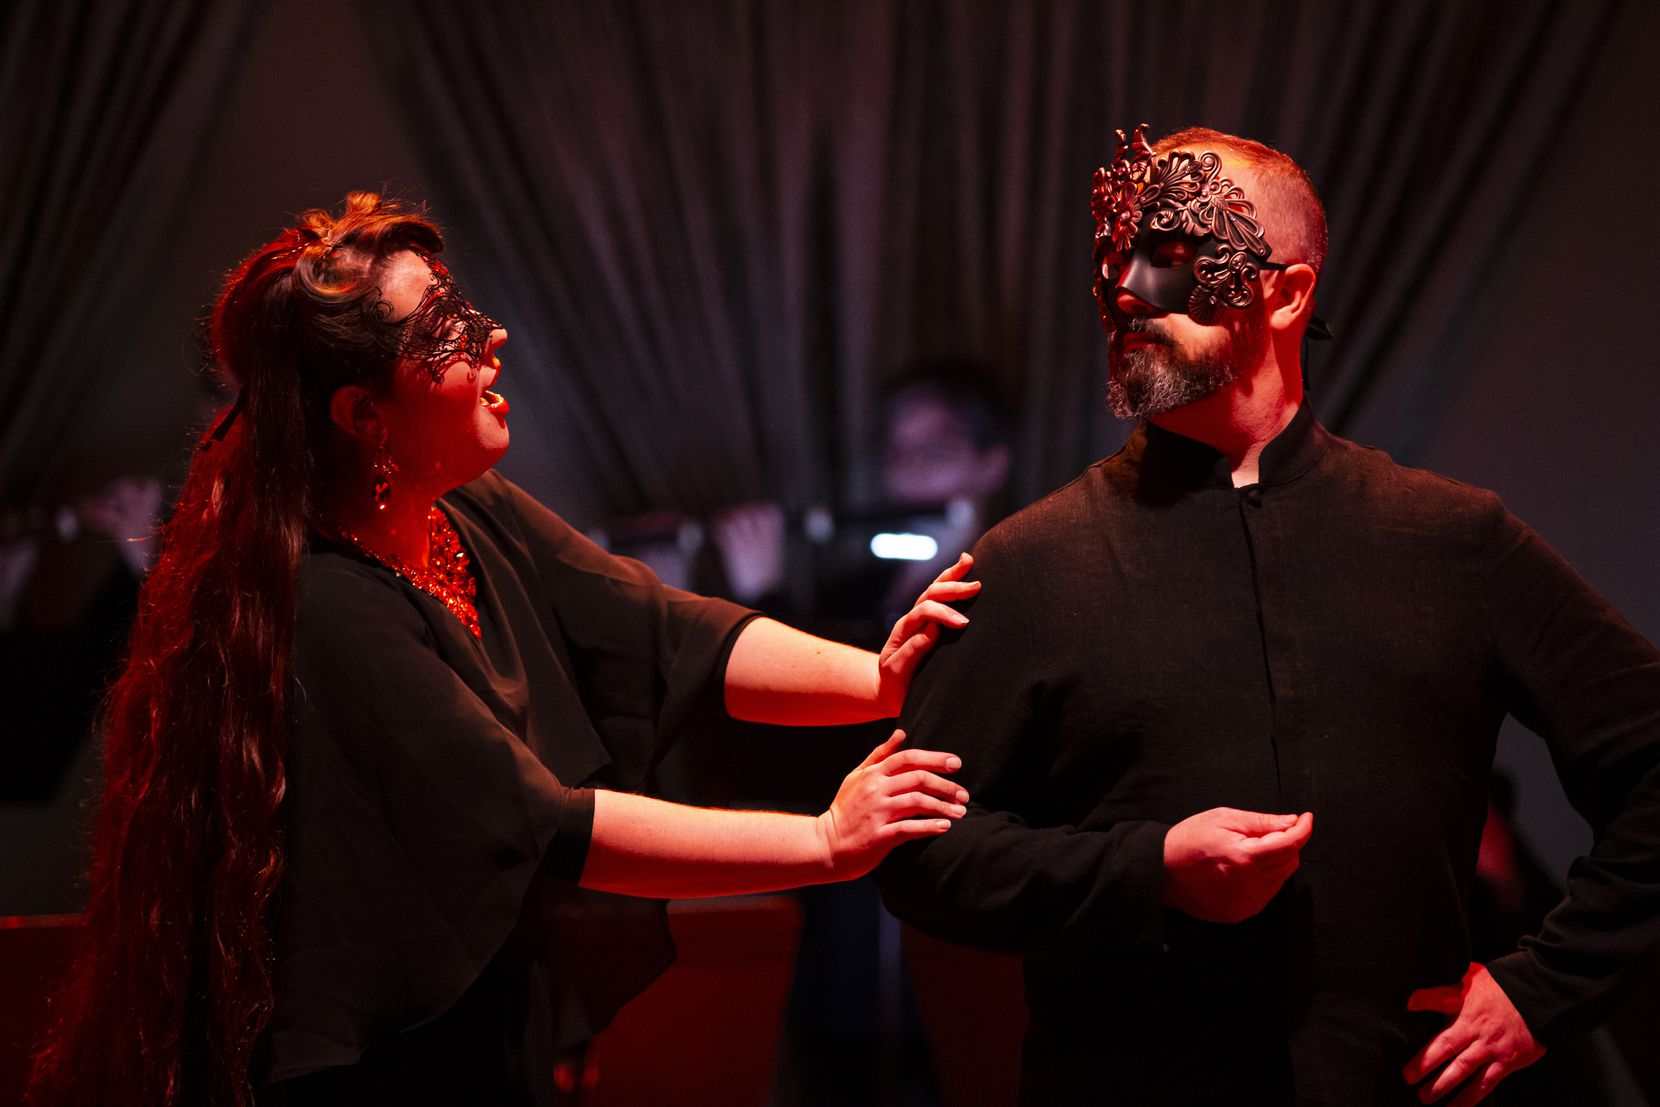 Anna Frederika Poppova (as Proserpine) and Brandon Gibson (as Pluton) perform during a dress rehearsal of American Baroque Opera Co. production of Marc-Antoine Charpentier's 'La descent d'Orphée aux enfers' at the Sammons Center for the Arts in Dallas on Oct. 31, 2019.